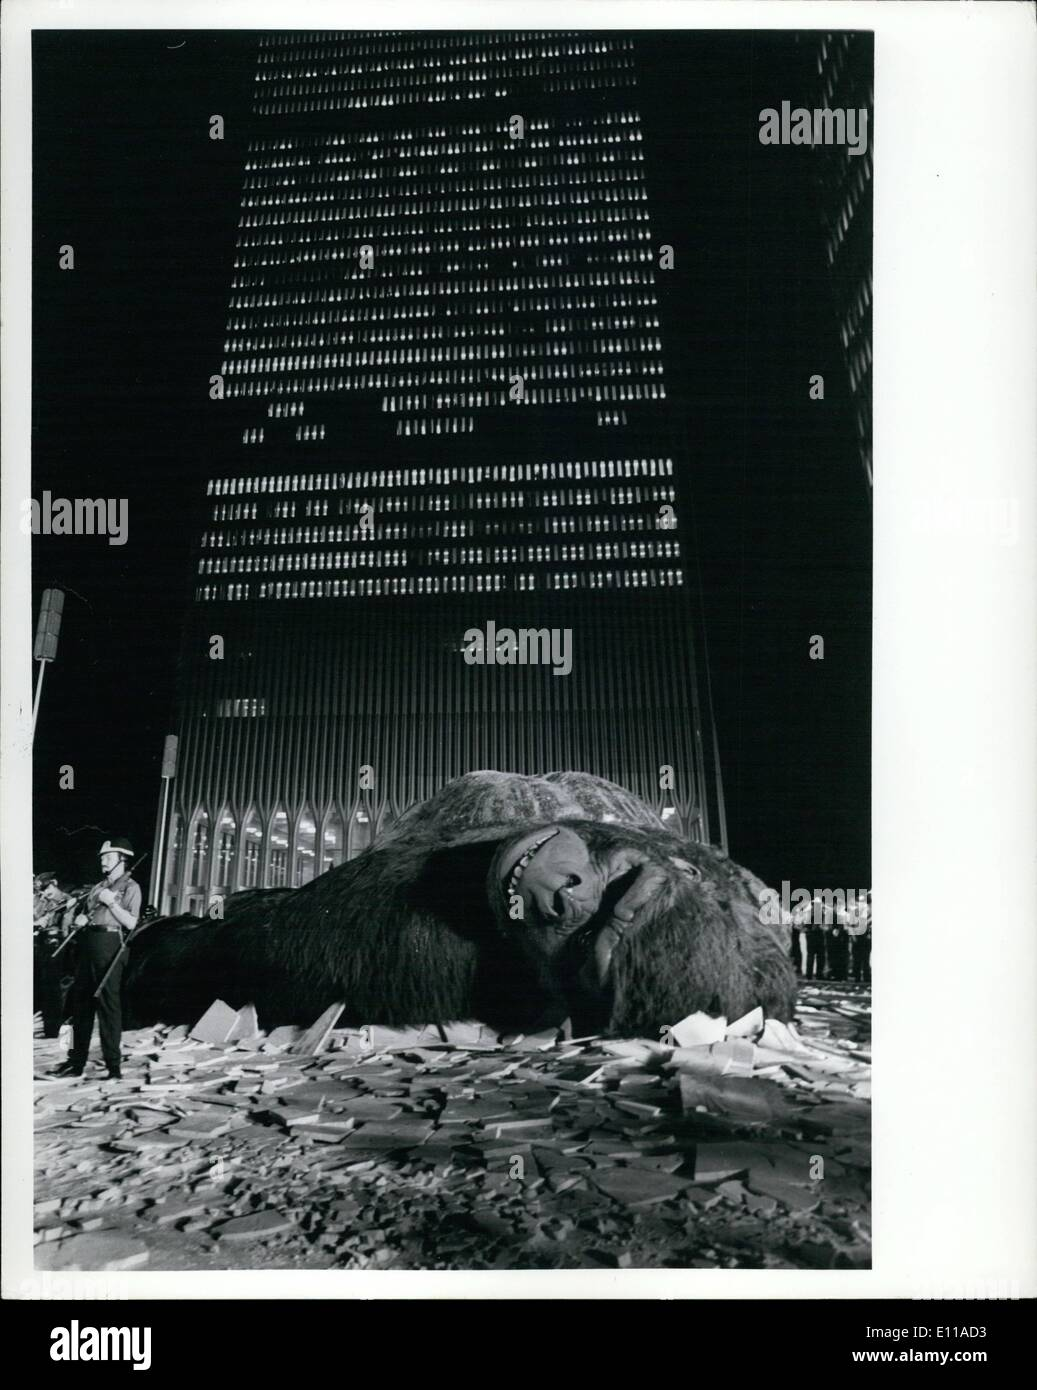 Jun. 06, 1976 - King Kong filming at World Trade Center new production by Dino de . Photo shows beauty: Jessica Lange. - Stock Image